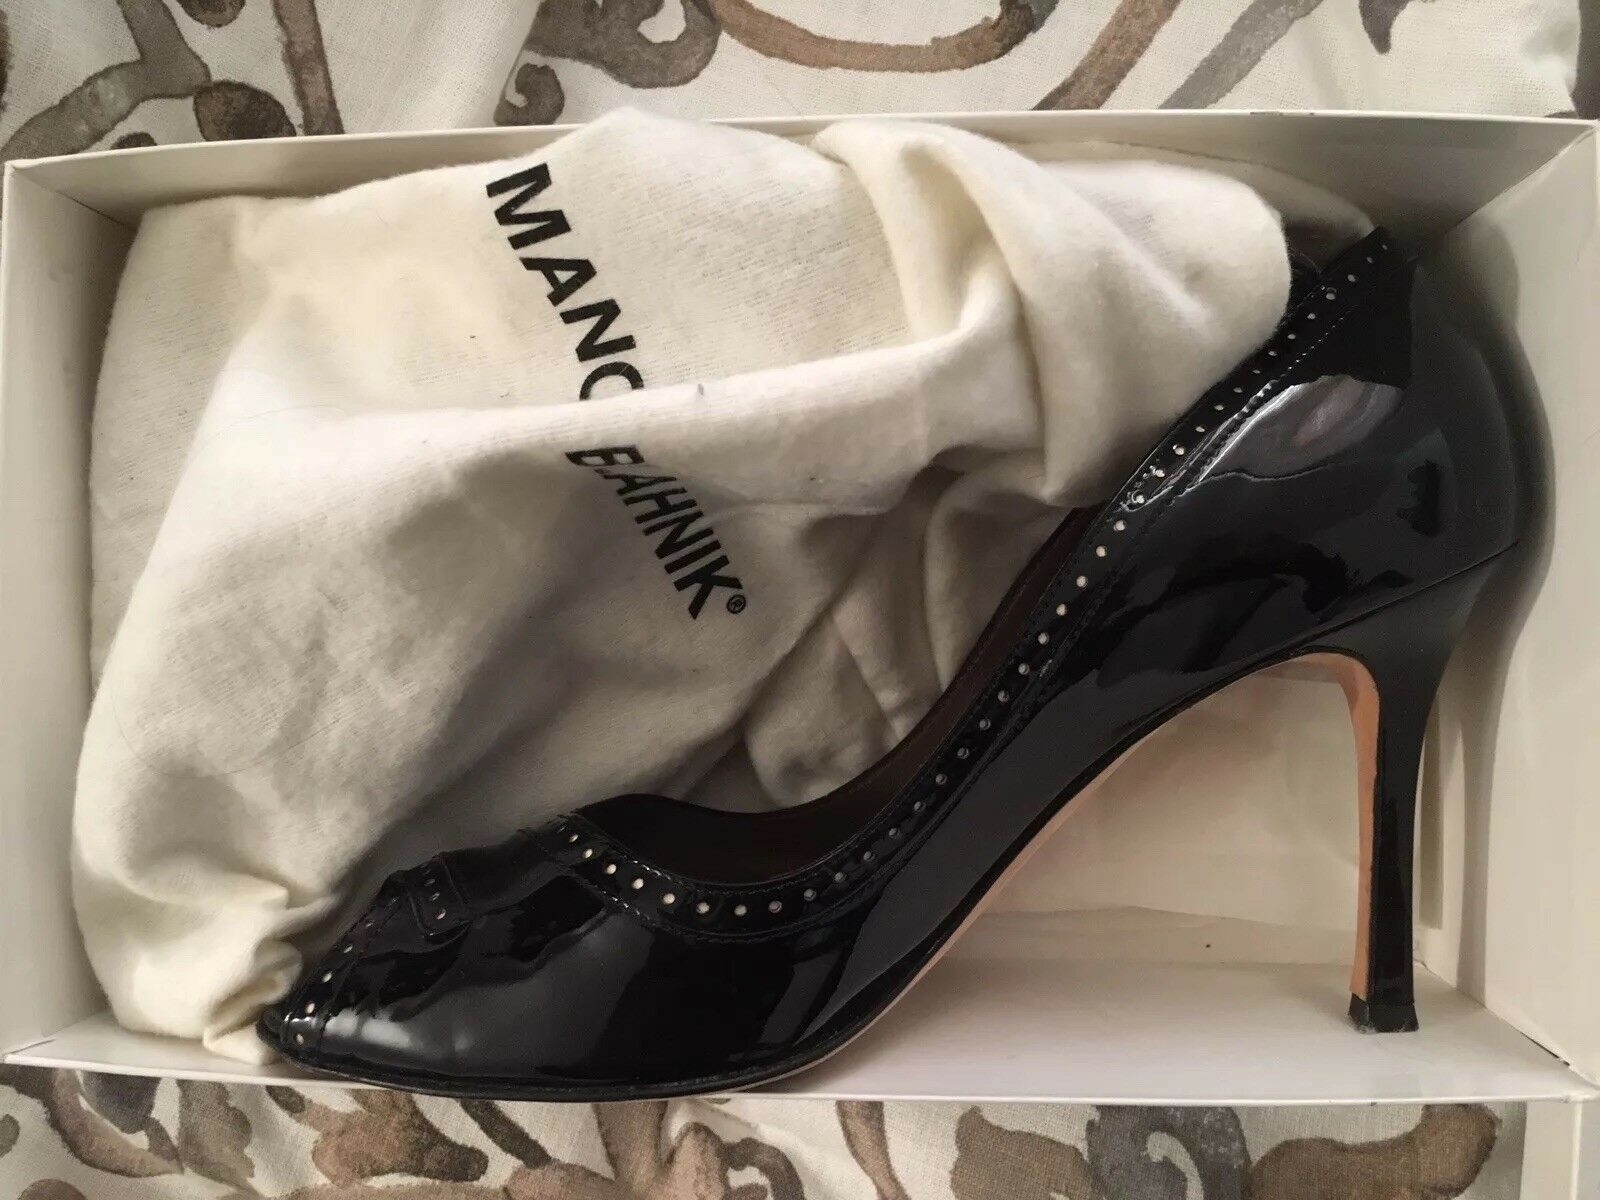 Manolo Blahnik Black Patent Peep Toe Pumps Sz 41